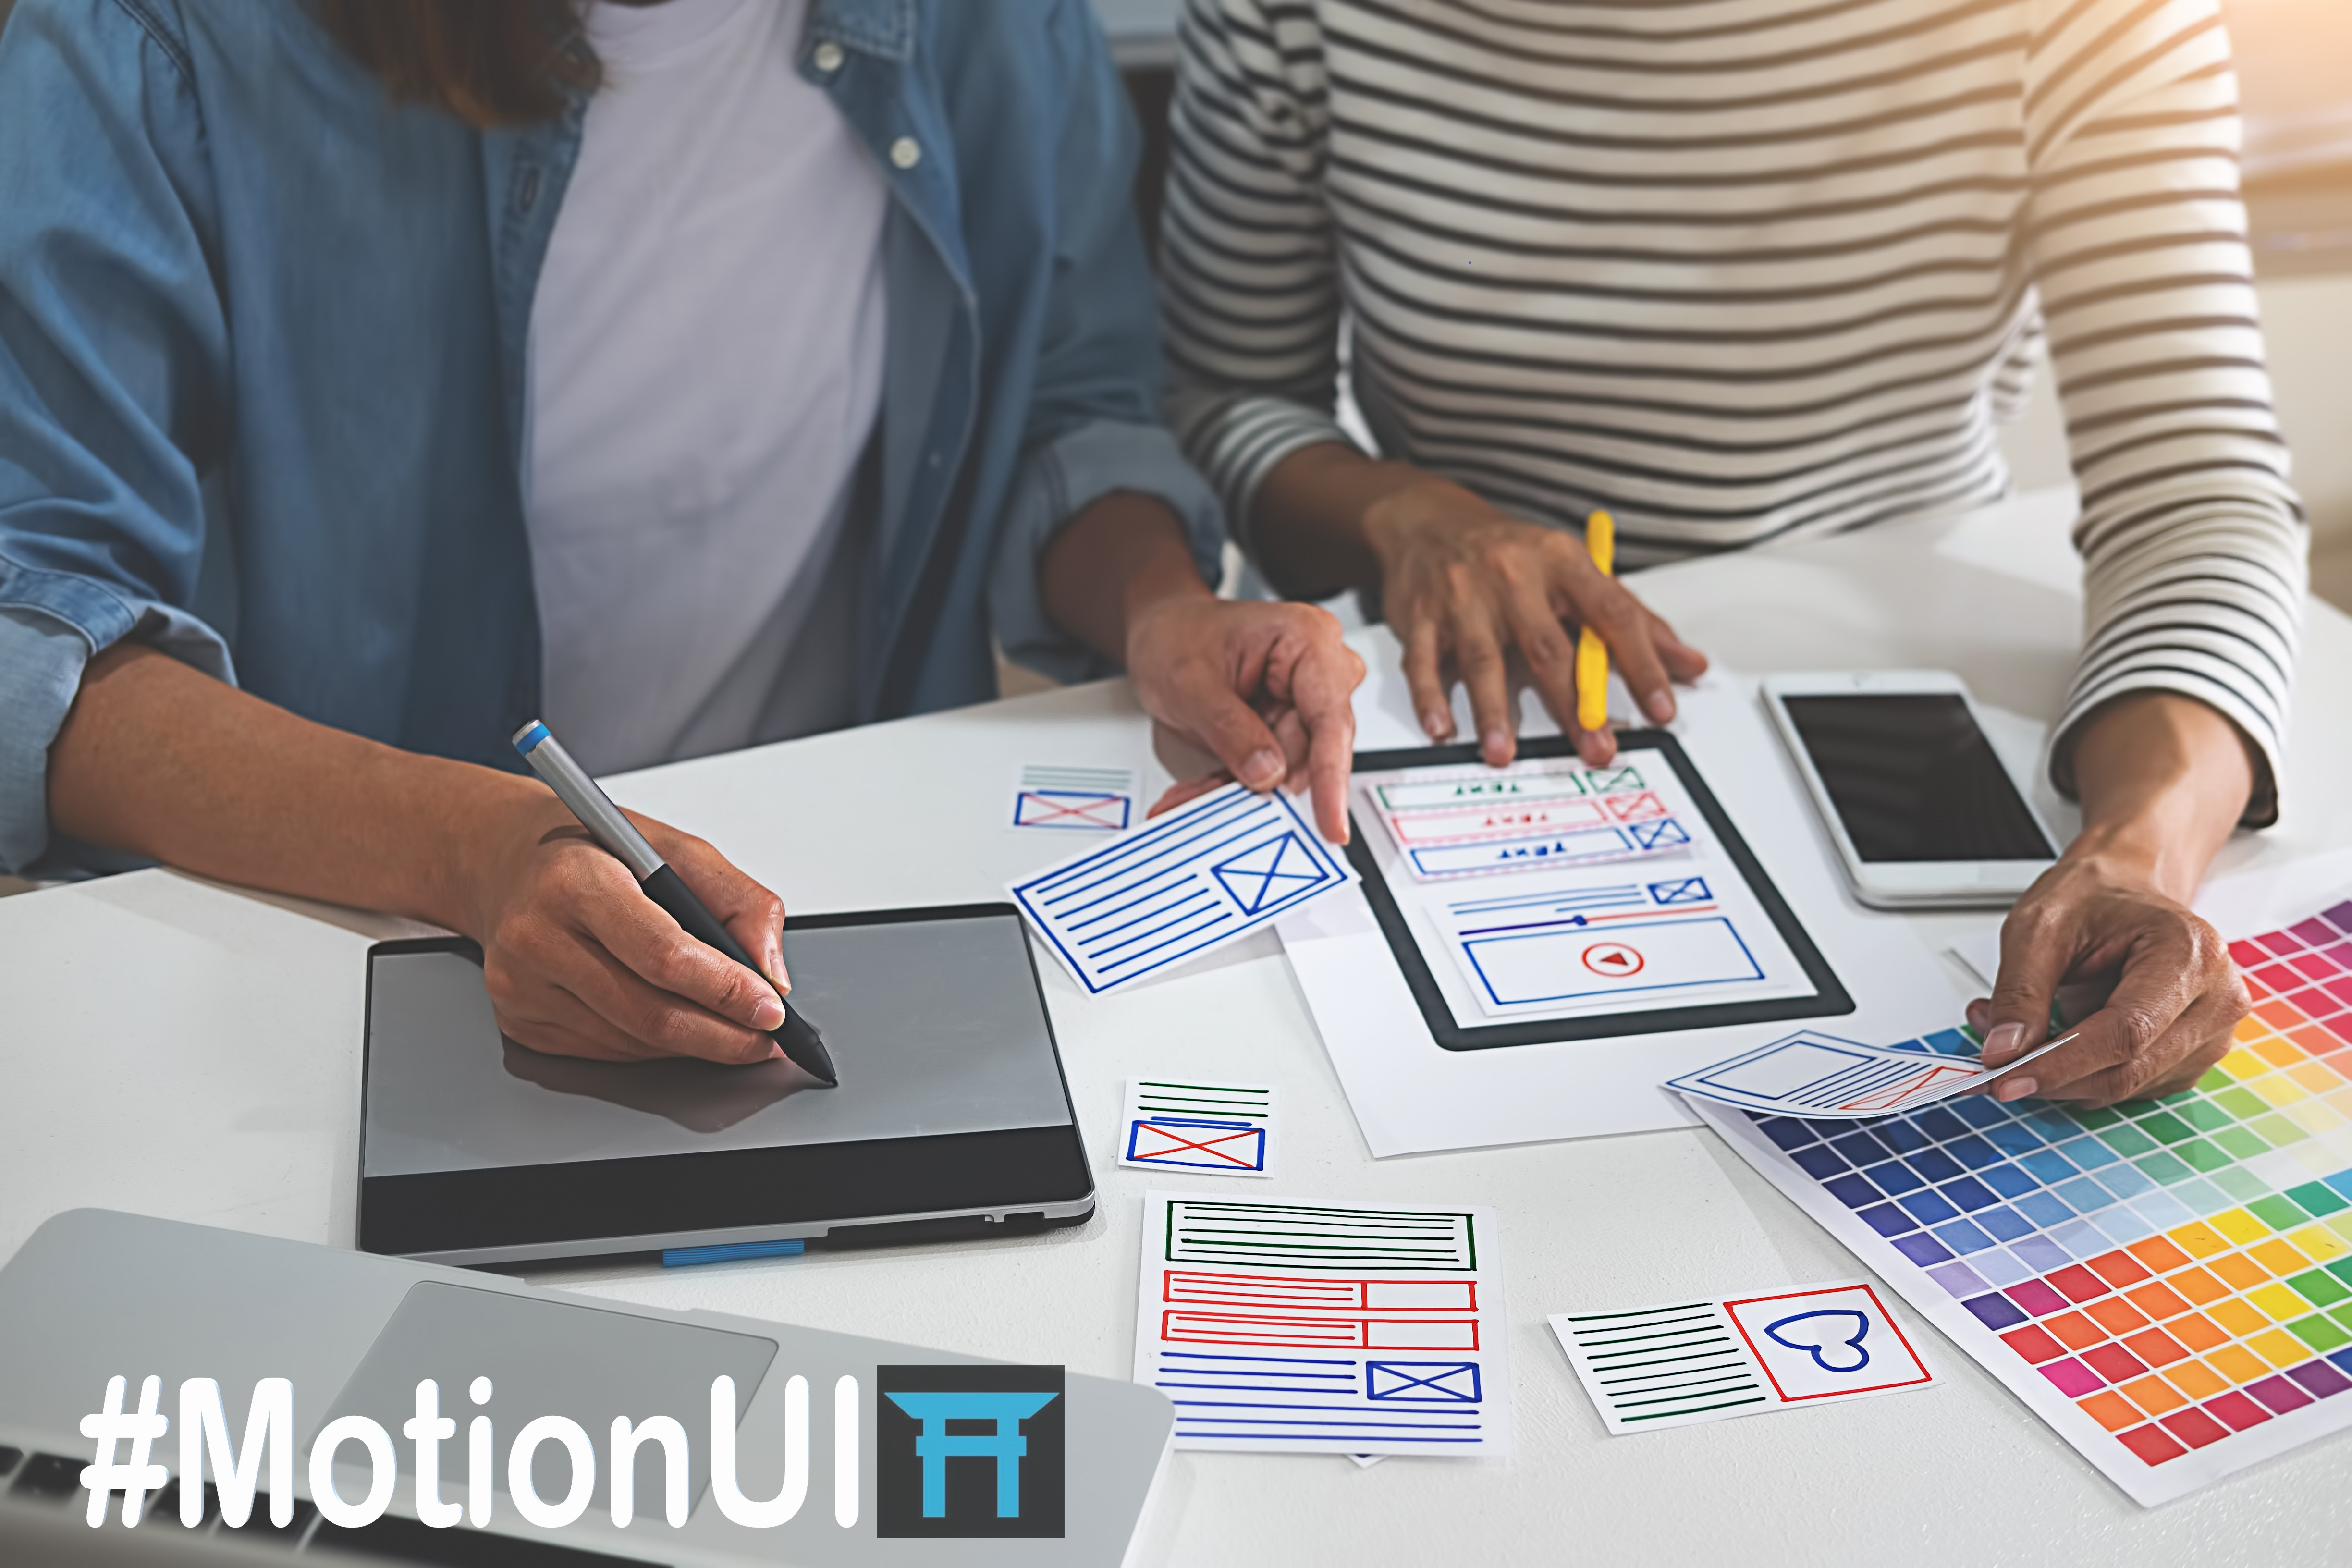 MotionUI  - MotionUI - Top 8 Web Development Trends of 2019